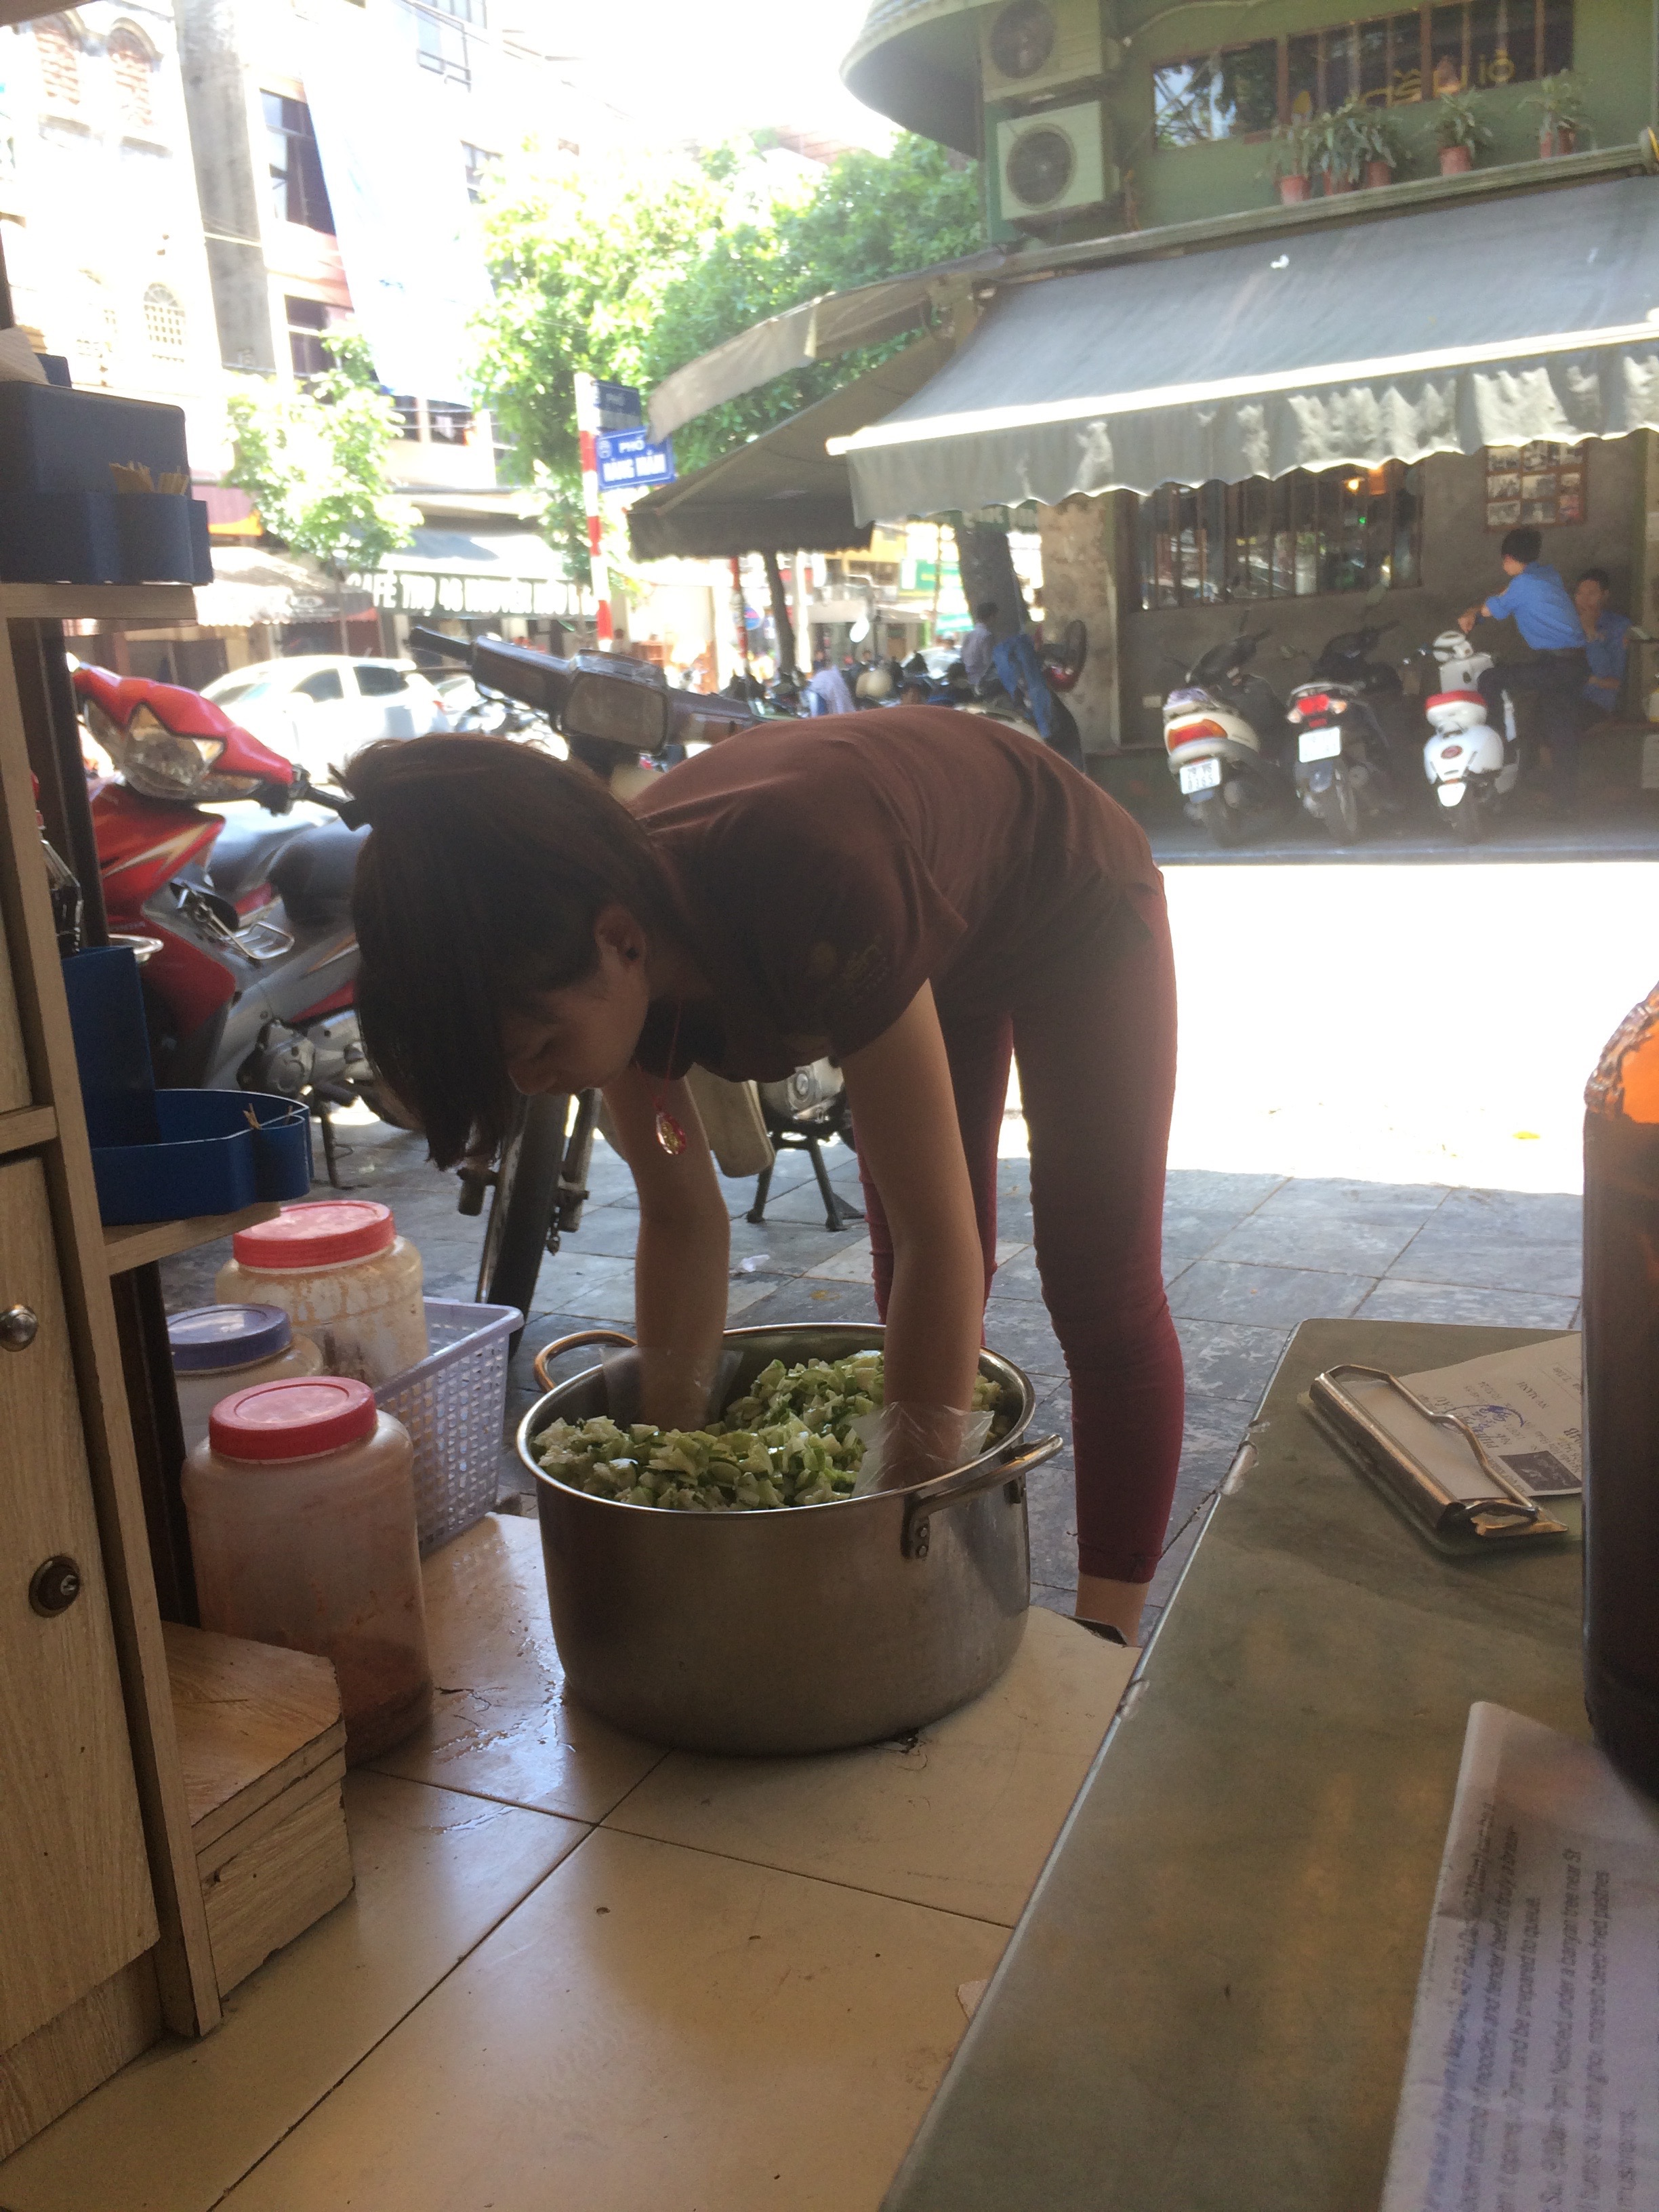 Making sauce in the street.